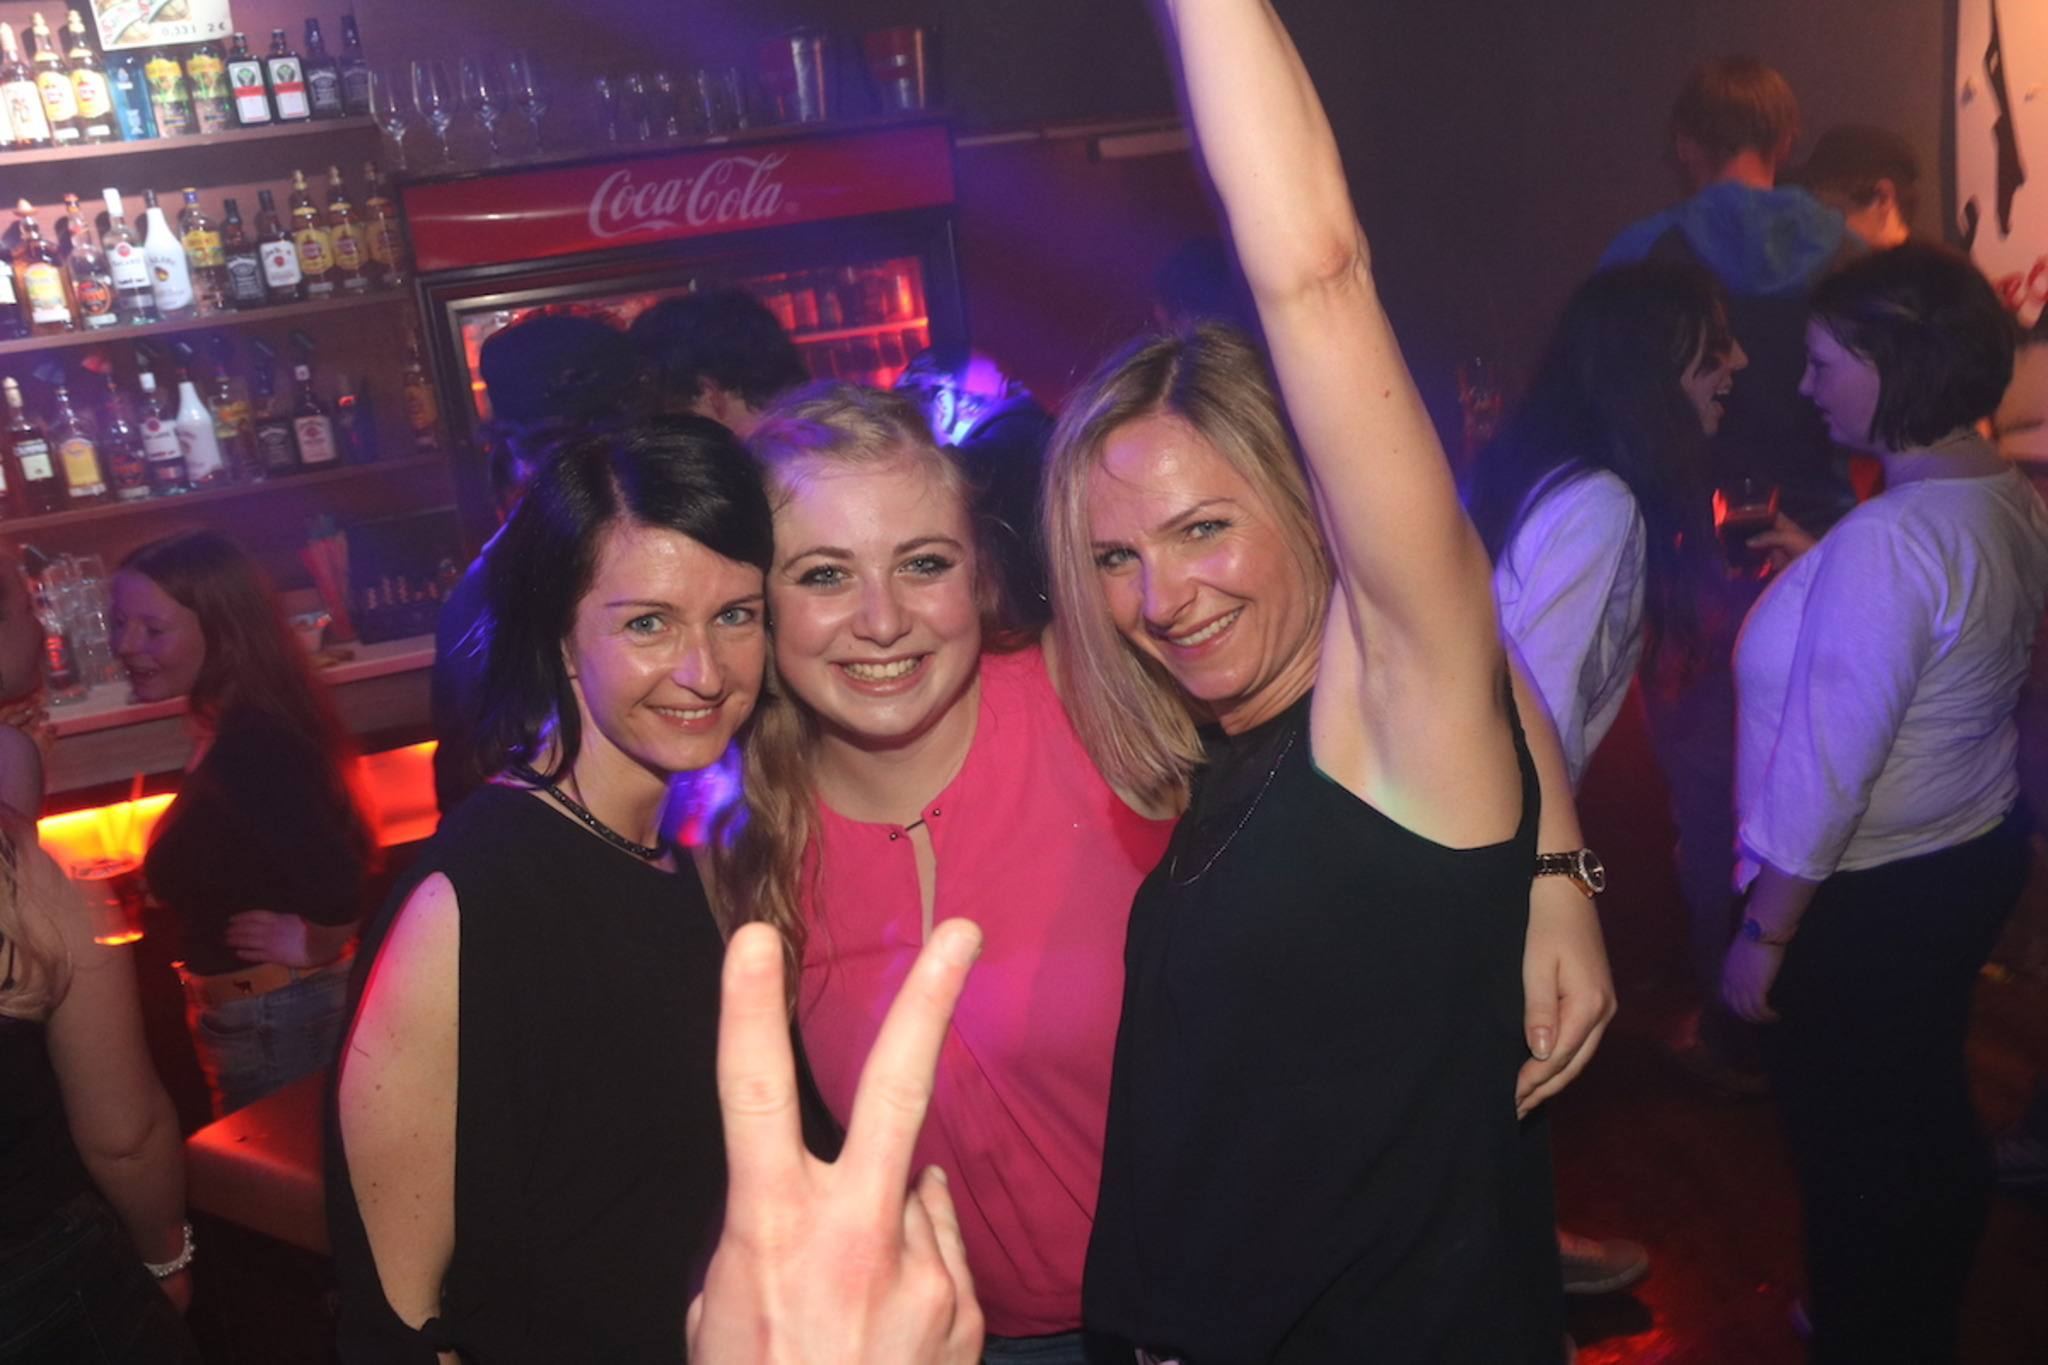 Single party nachtleben potsdam